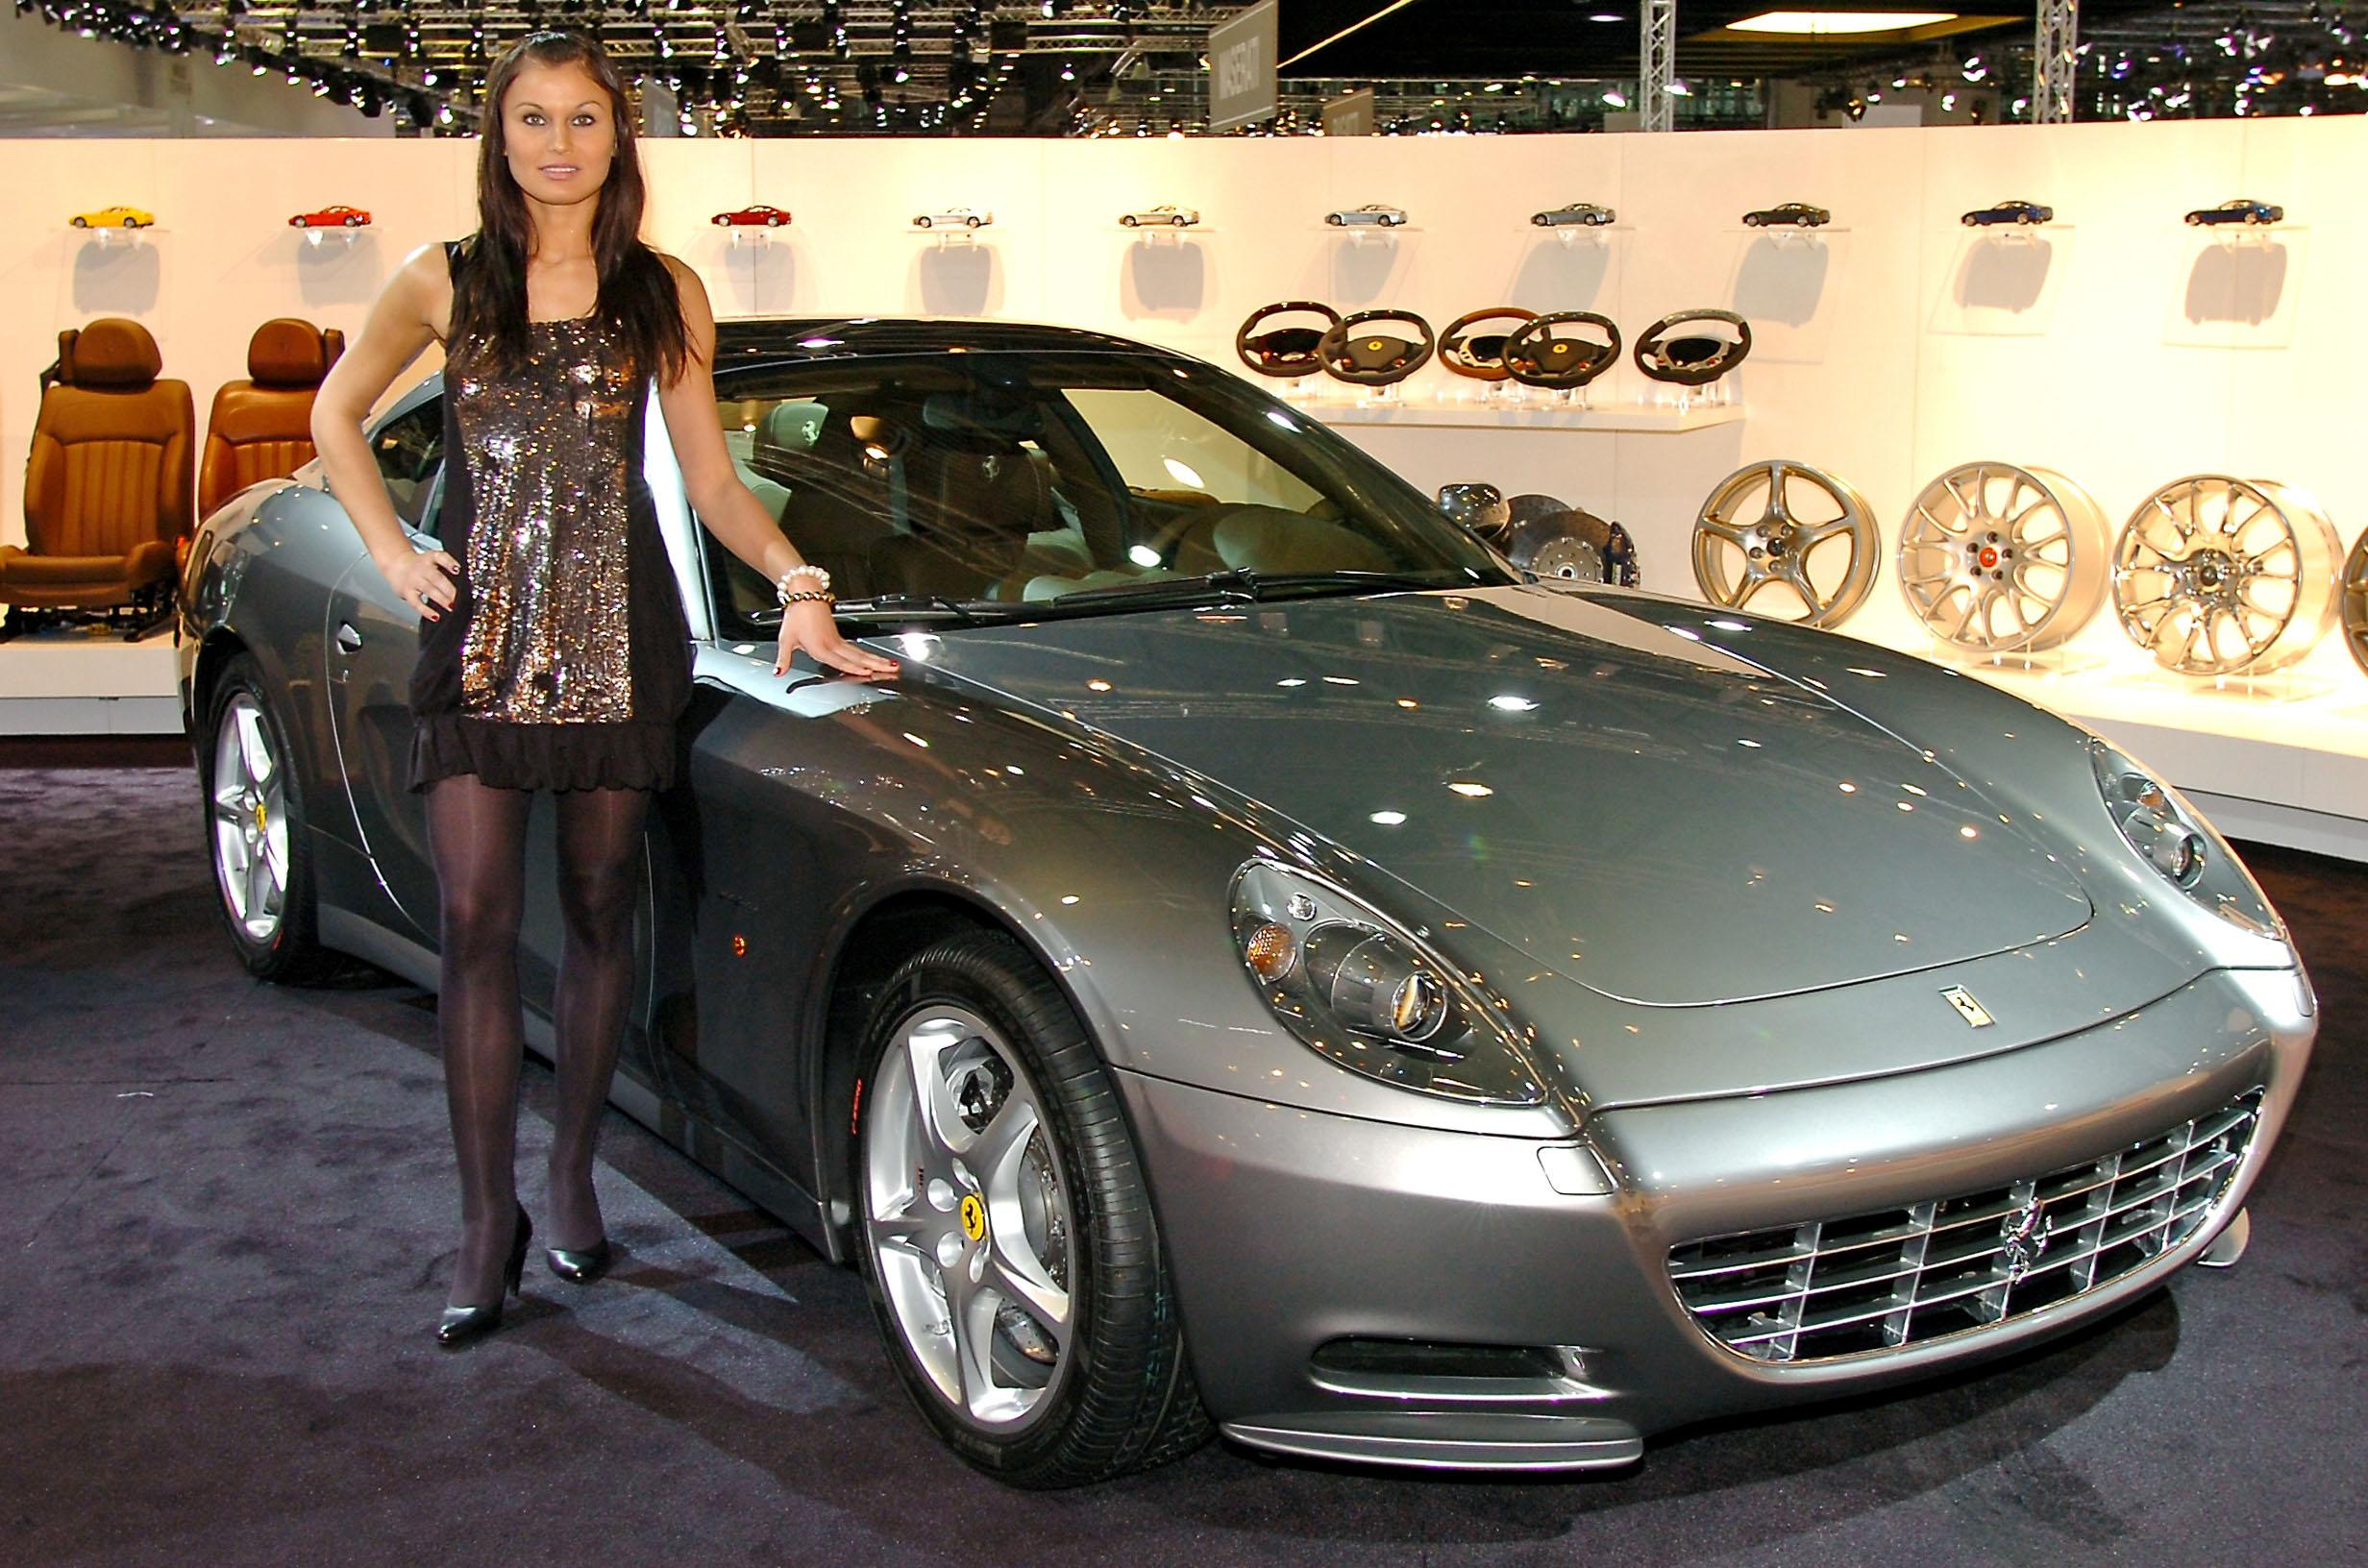 2008 Ferrari 612 Scaglietti One To One | Top Speed. »